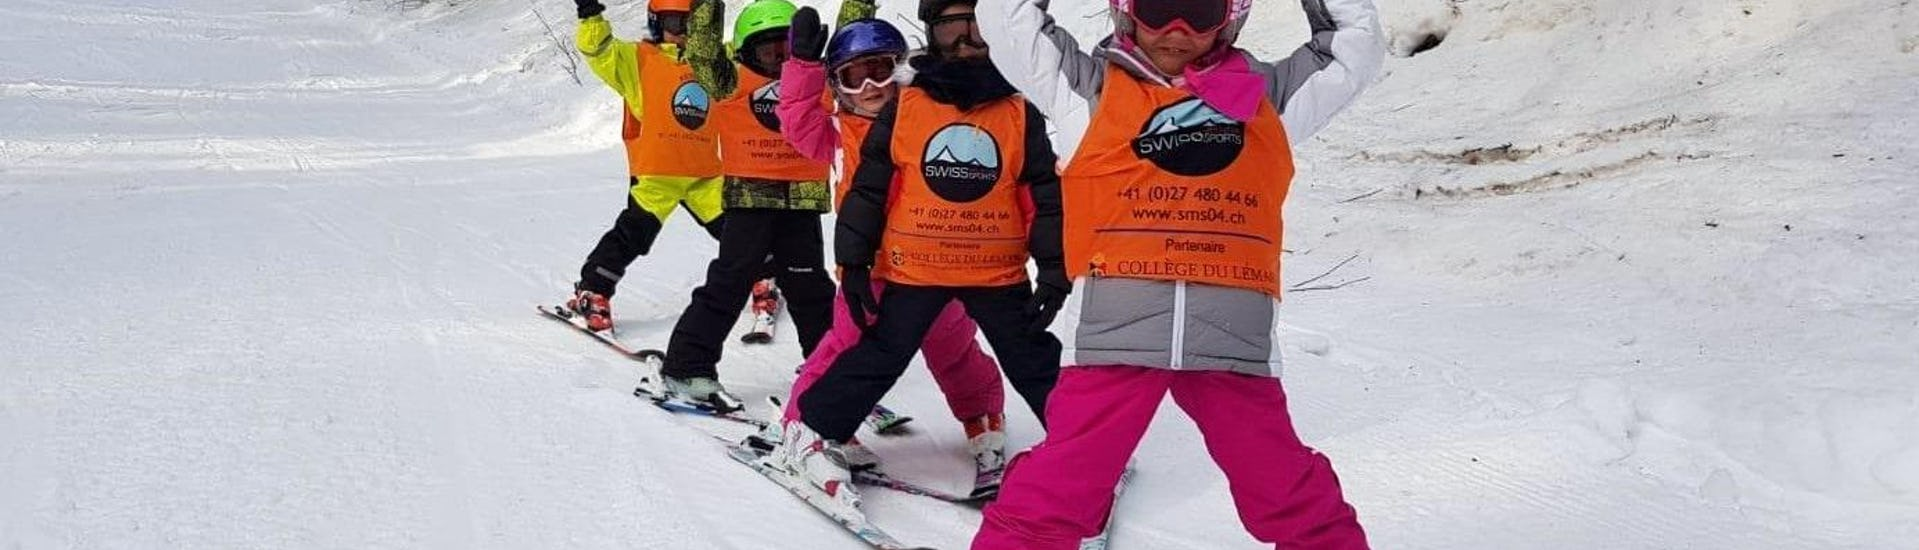 Kids Ski Lessons (6-12 years) - Max 5 - Crans - All Levels